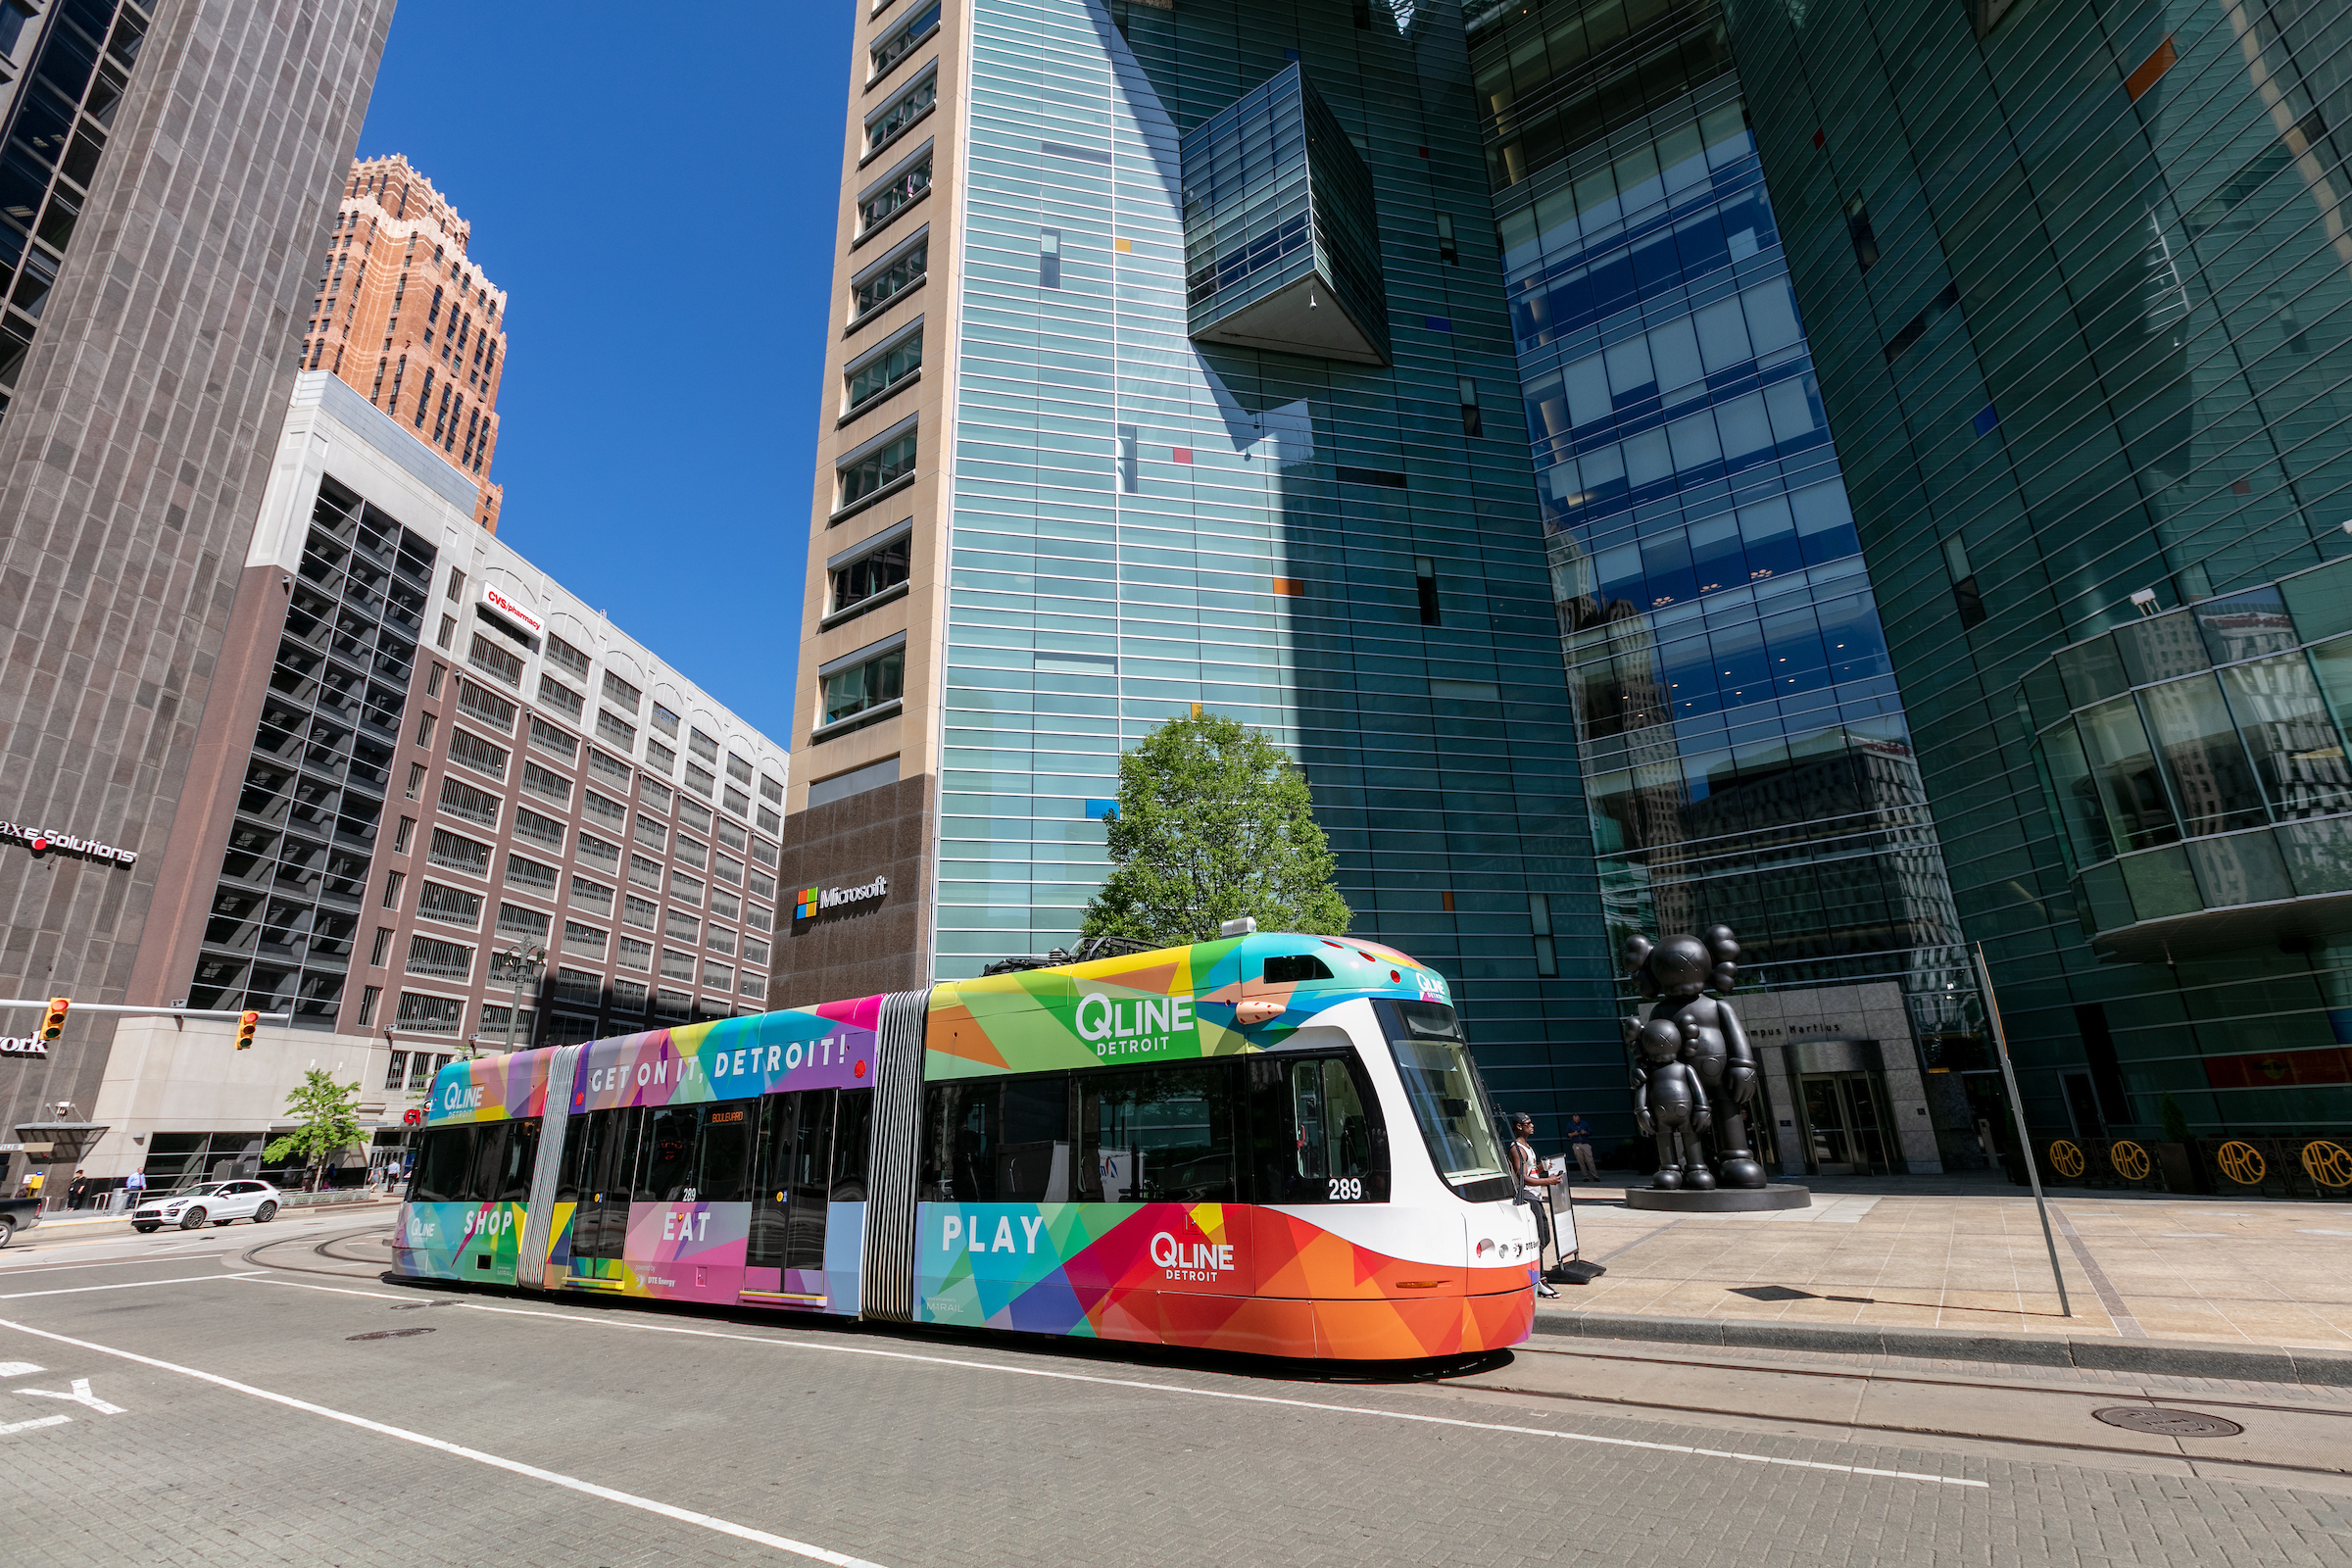 QLine to be added to metro Detroit's new transit payment system Dart